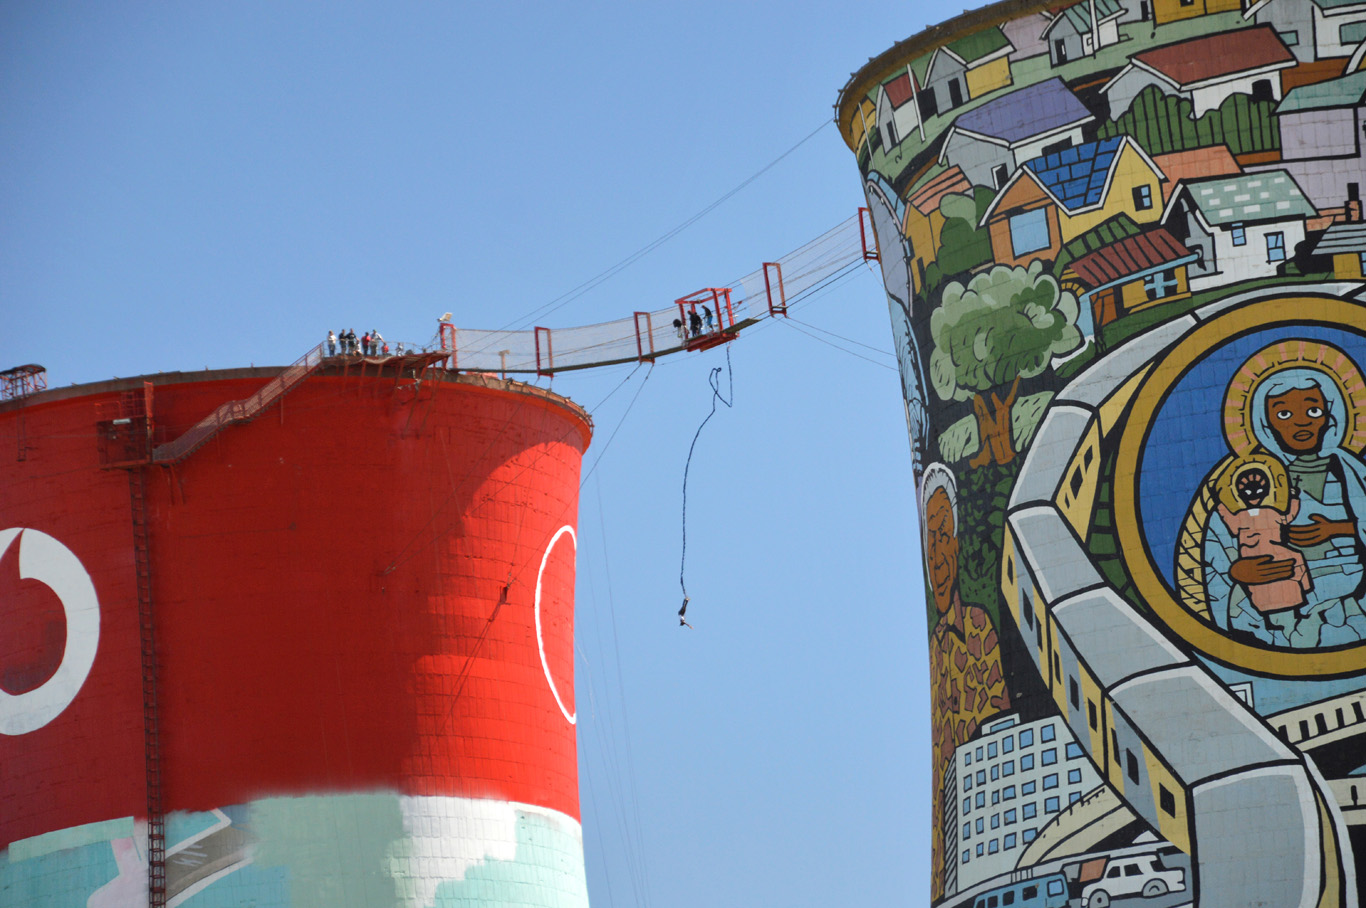 Bungee jumping from Orlando Towers